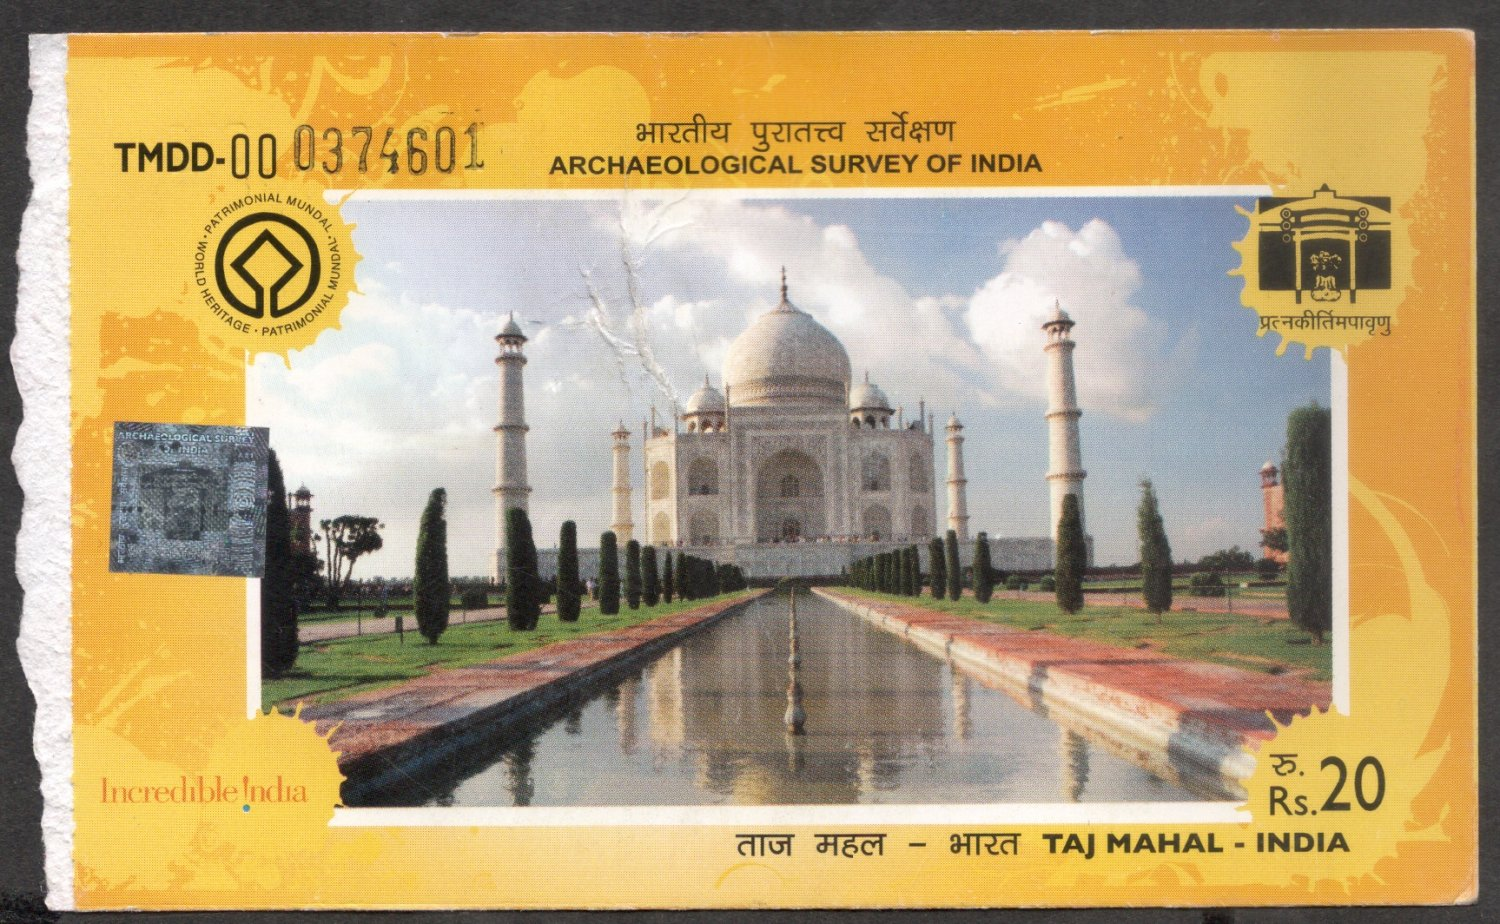 ARCHEOLOGICAL SURVEY OF INDIA - RUPEES 20.00 DENOMINATION ENTRY TICKET FOR TAJMAHAL AGRA